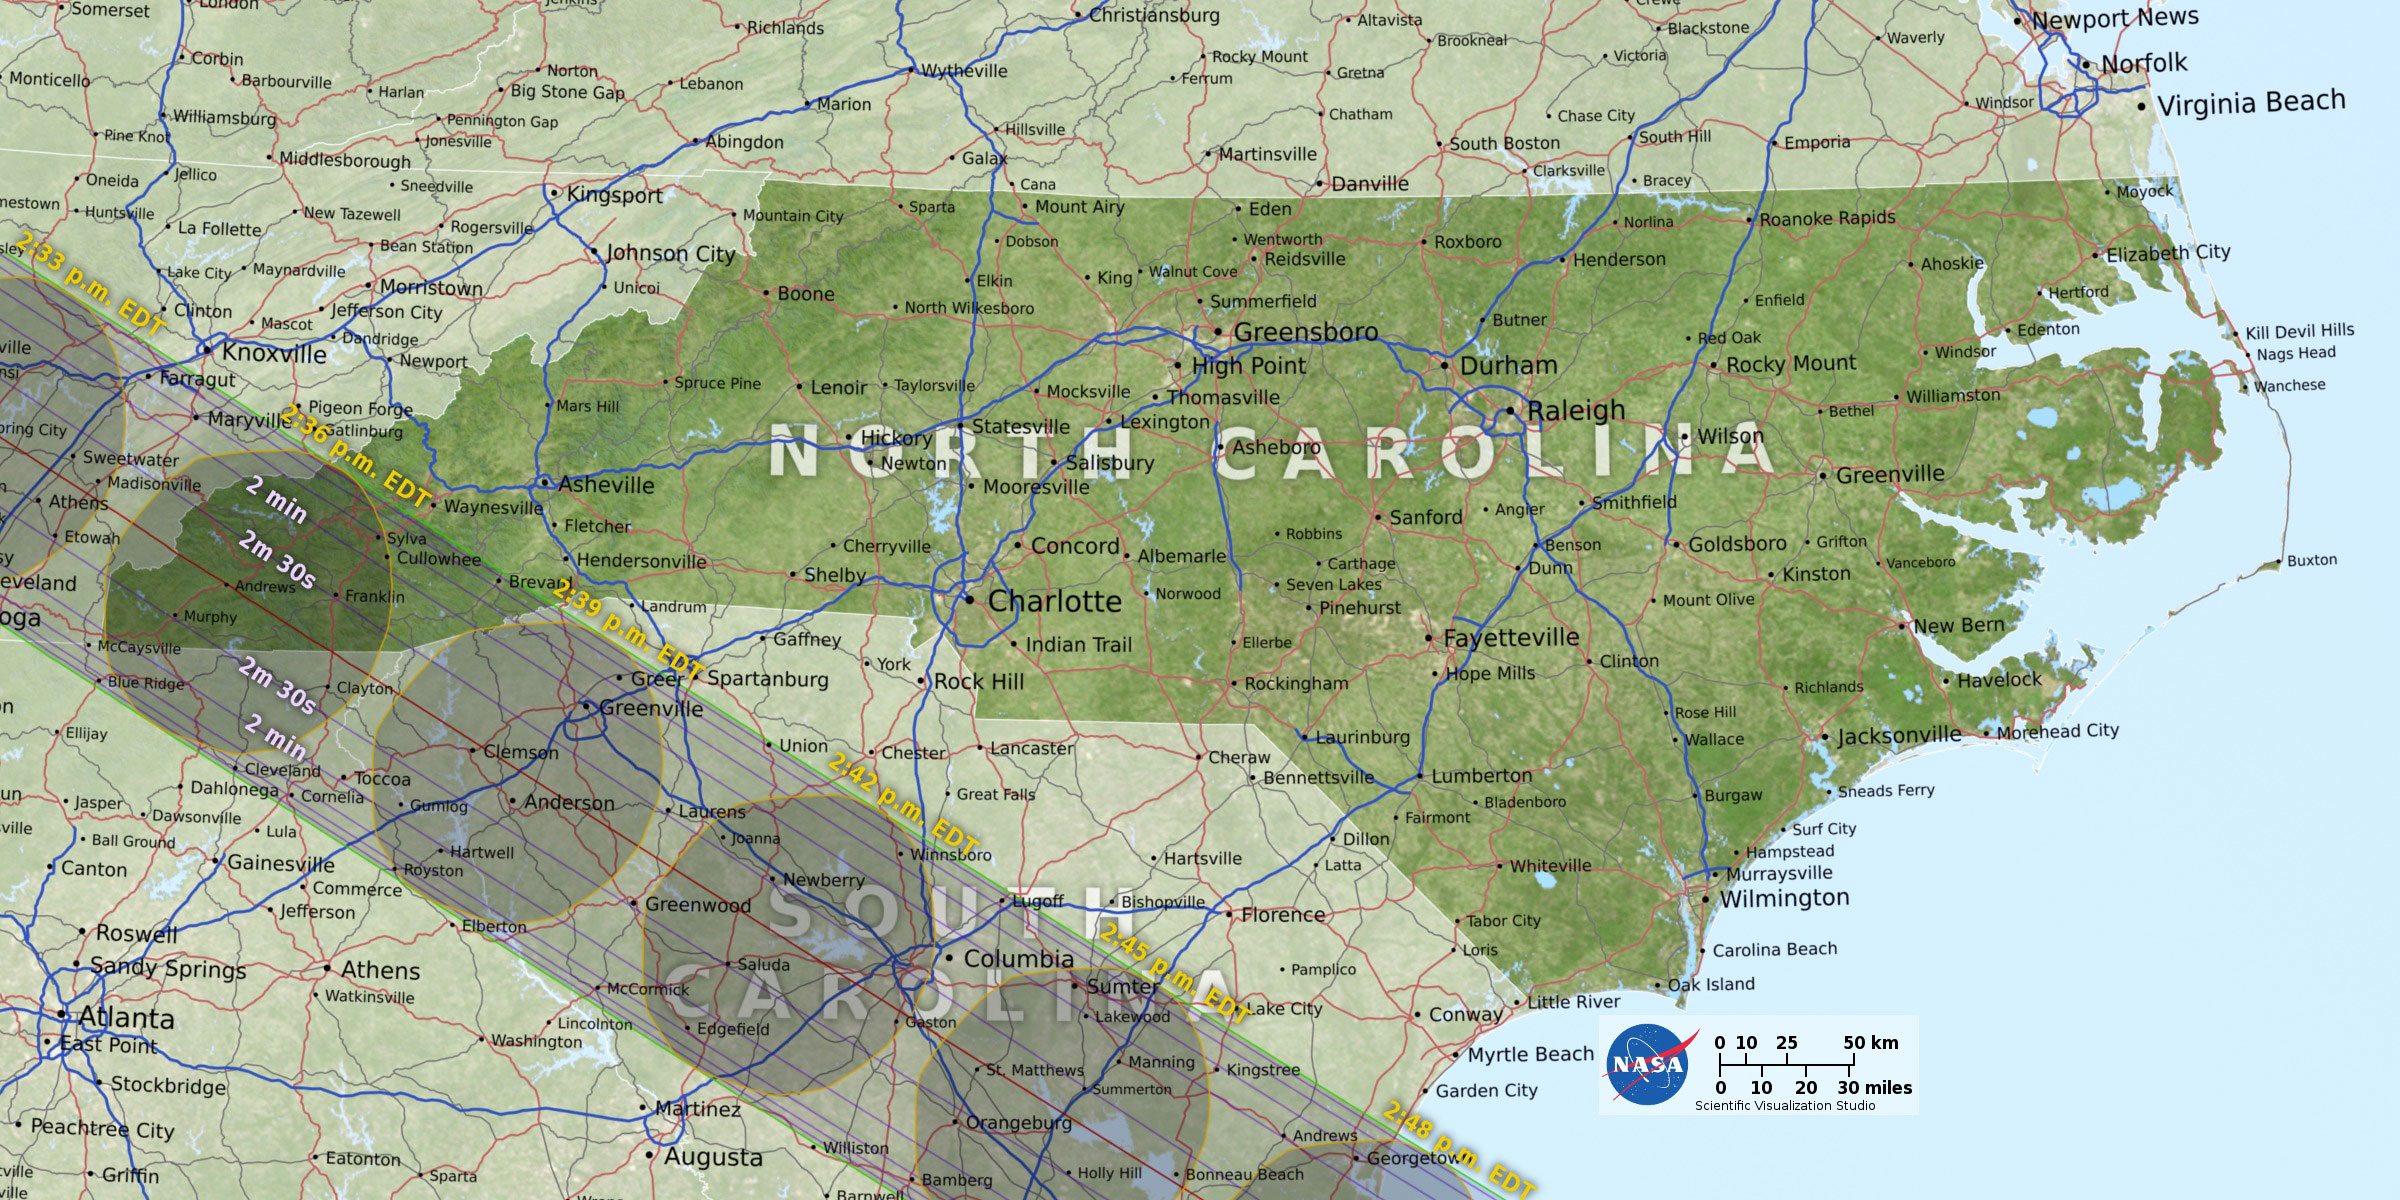 NASA- NC Map of totality eclipse